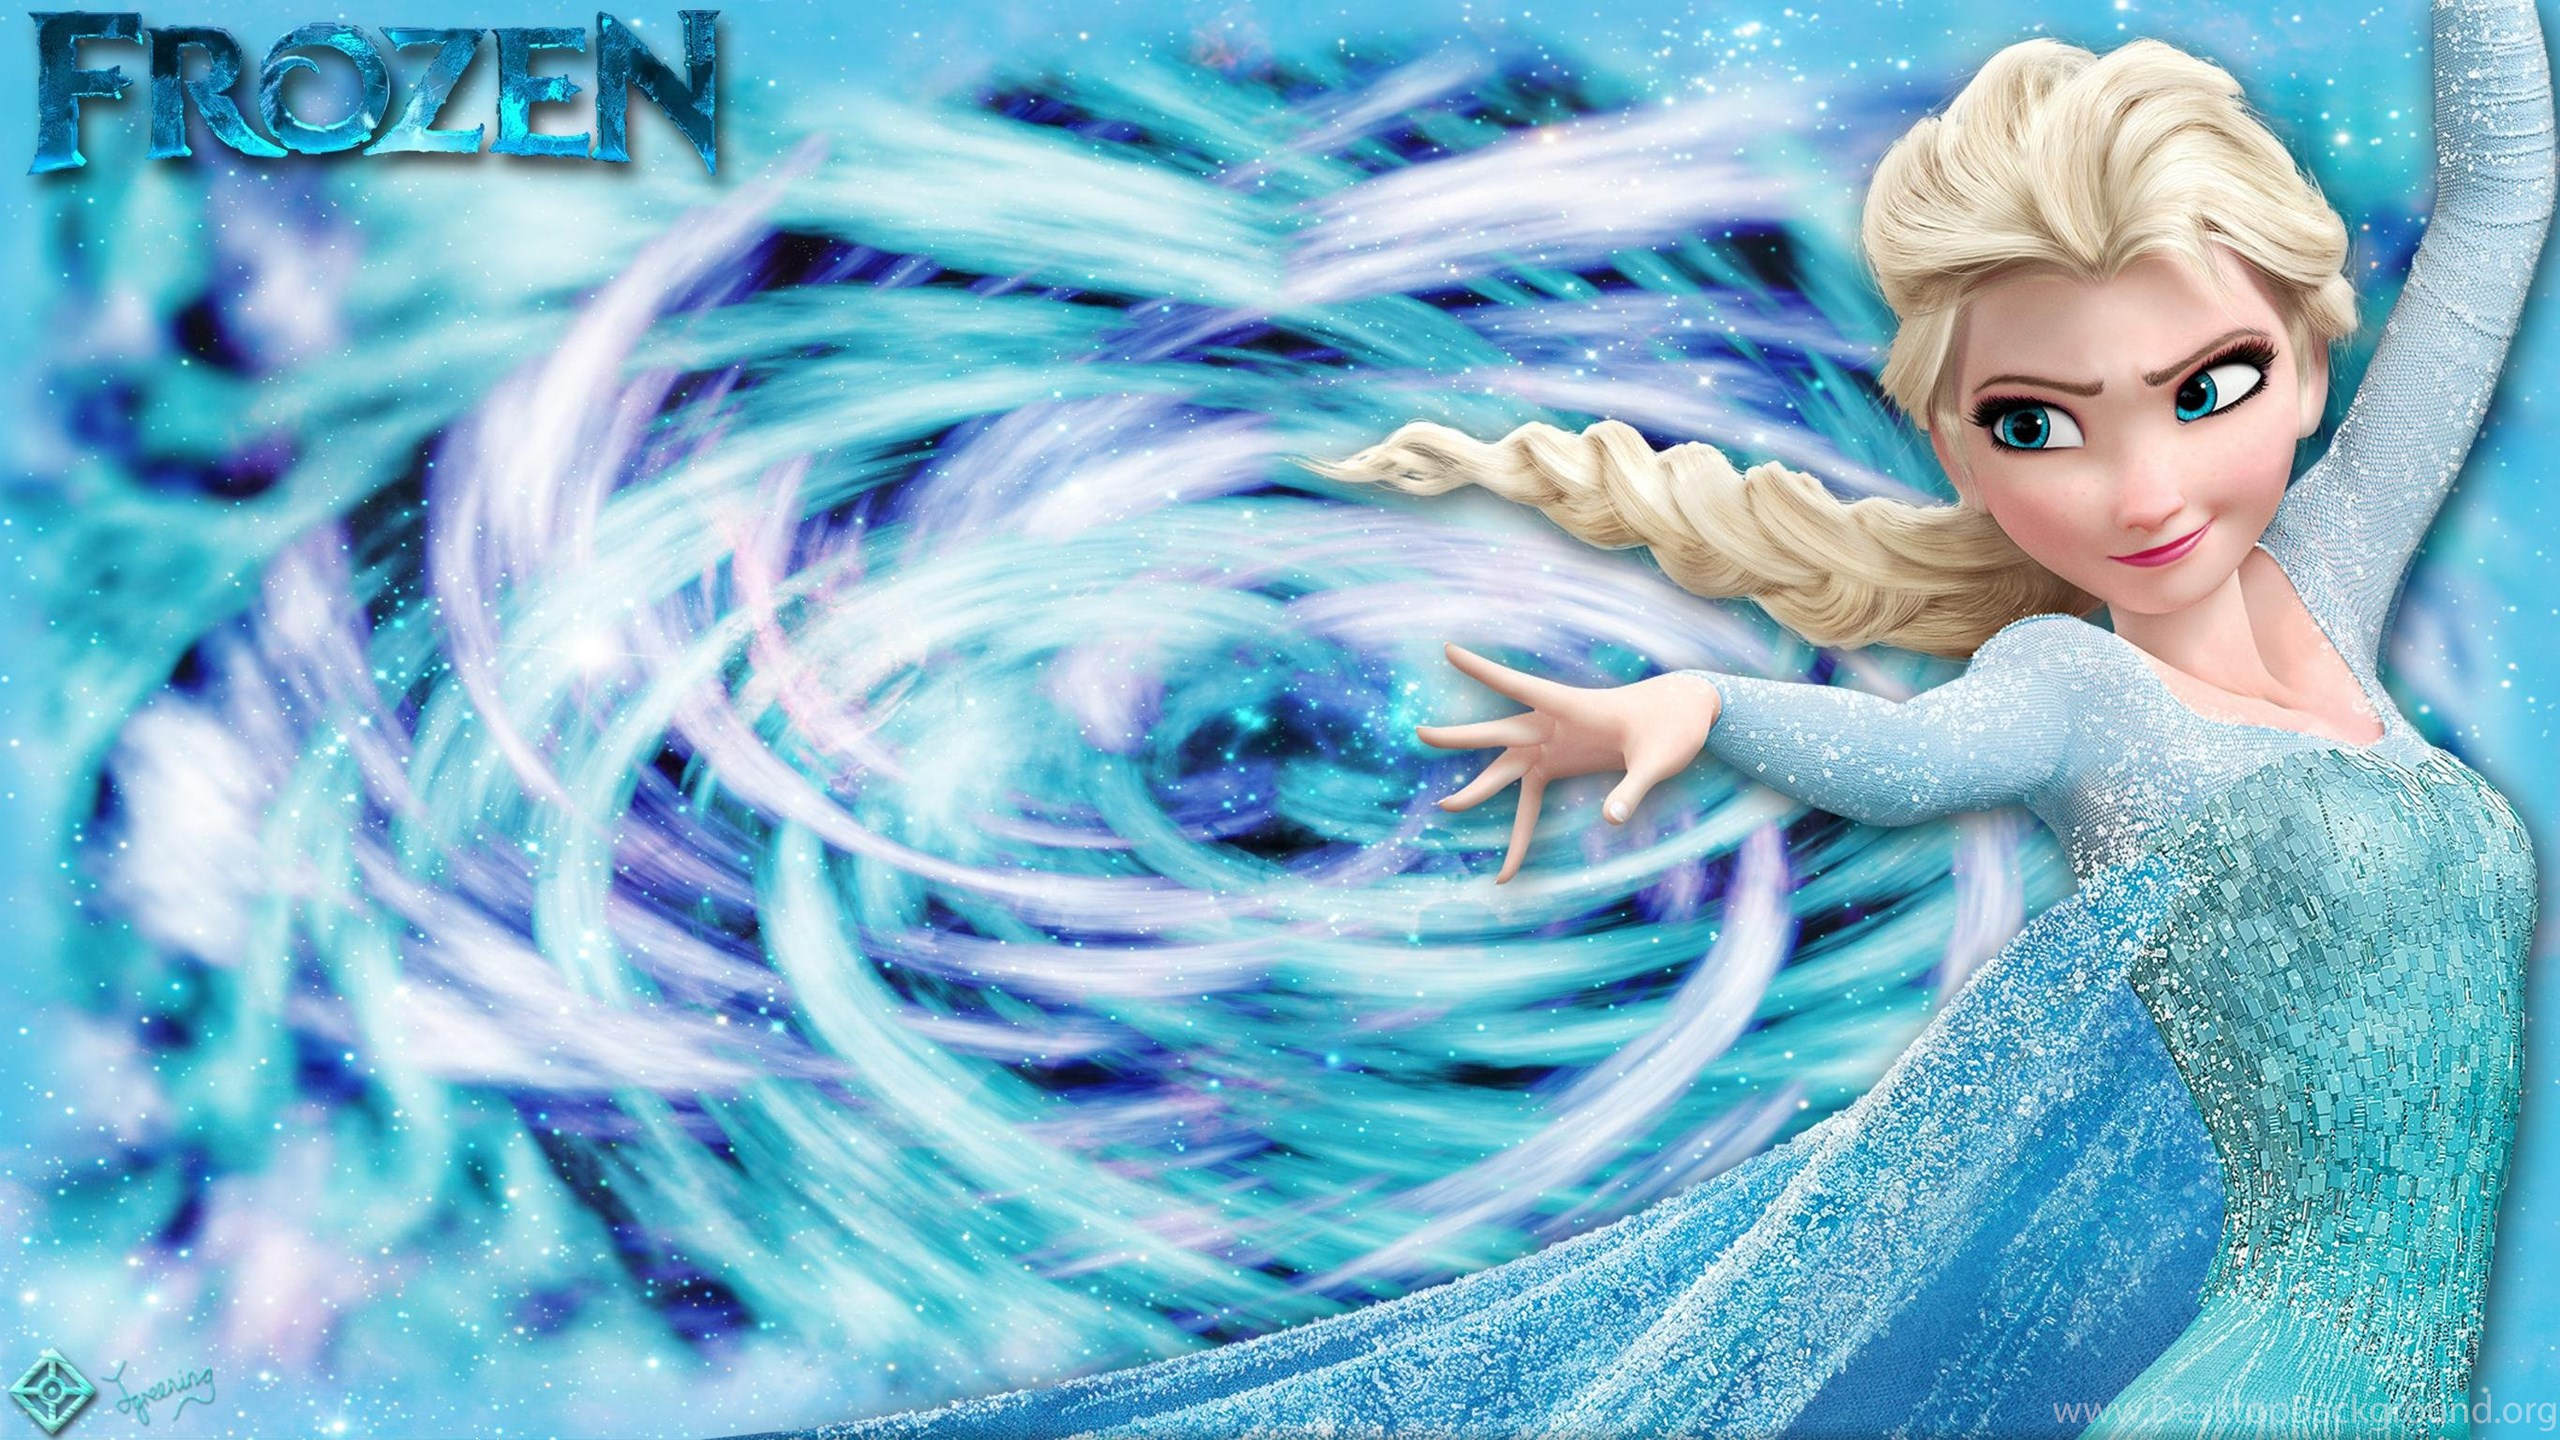 Best Elsa Frozen Disney Hd Wallpaper Get It Now Desktop Background